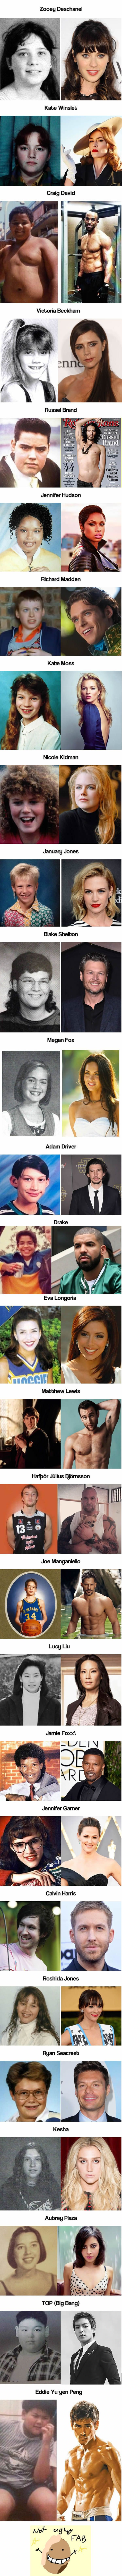 28 Celebrities Who Were Once Ugly Pretty Ugly Before Famous - 9GAG